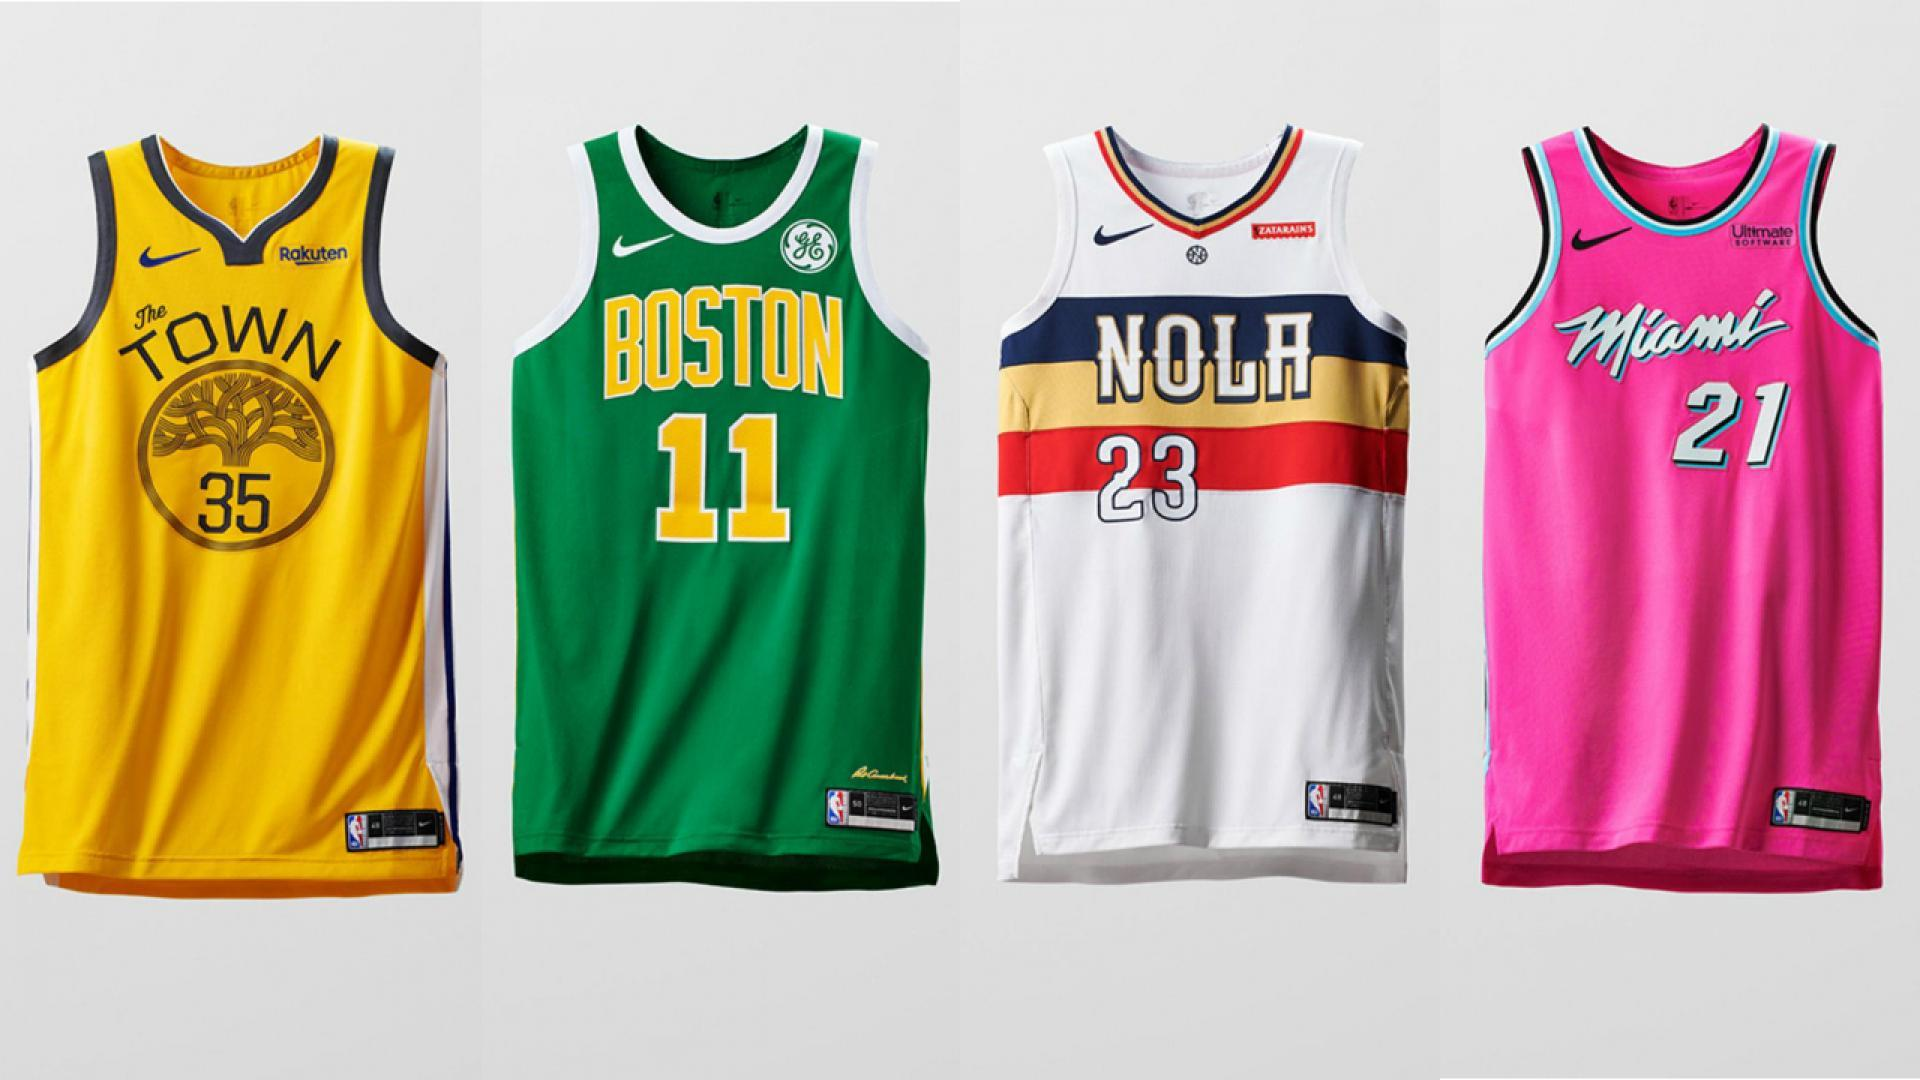 Contra la voluntad Favor persuadir  Teams unveil Earned Edition uniforms for 2018-19 season | NBA.com